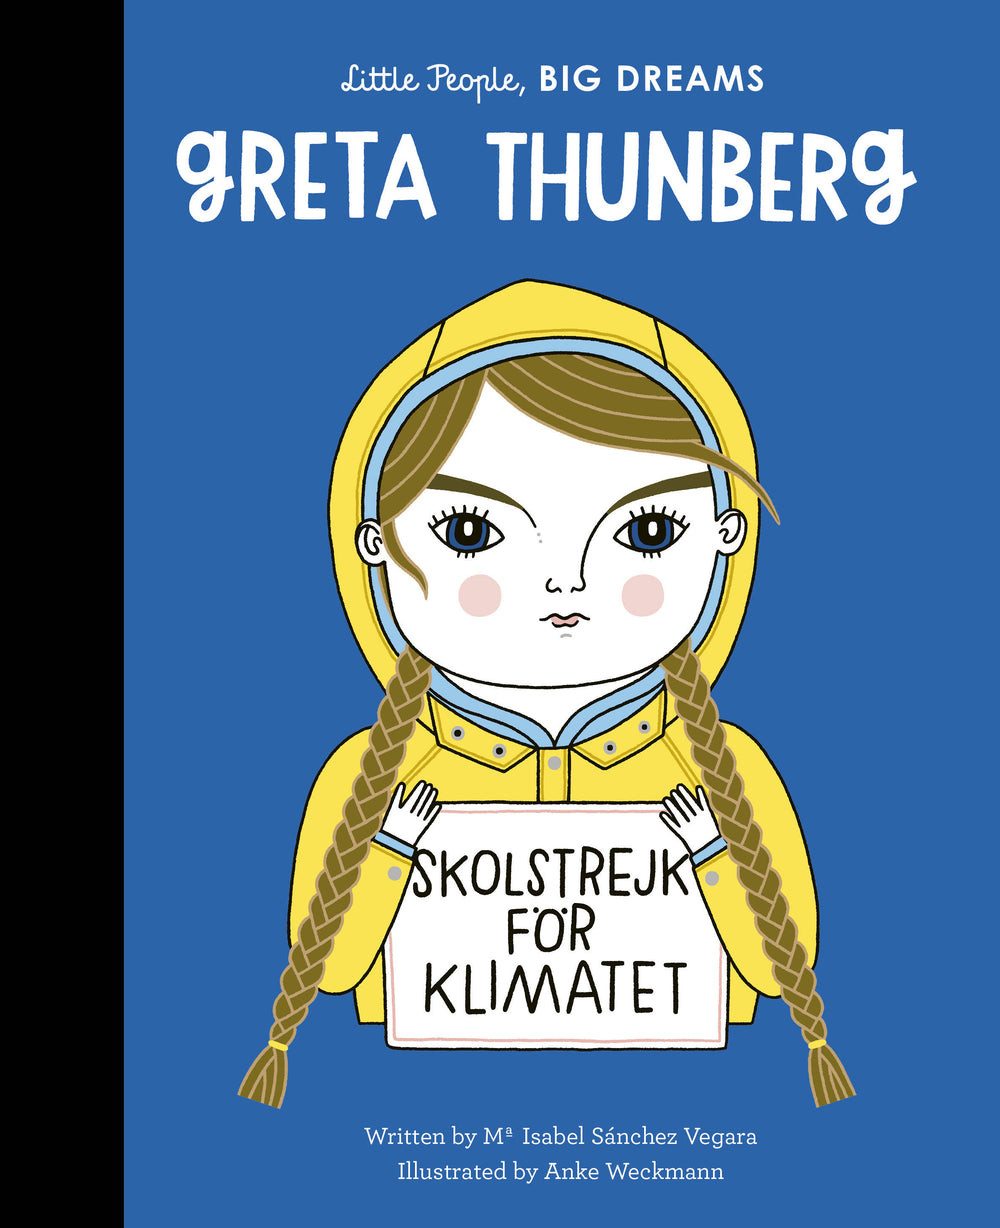 Little People Big Dreams : Greta Thunberg